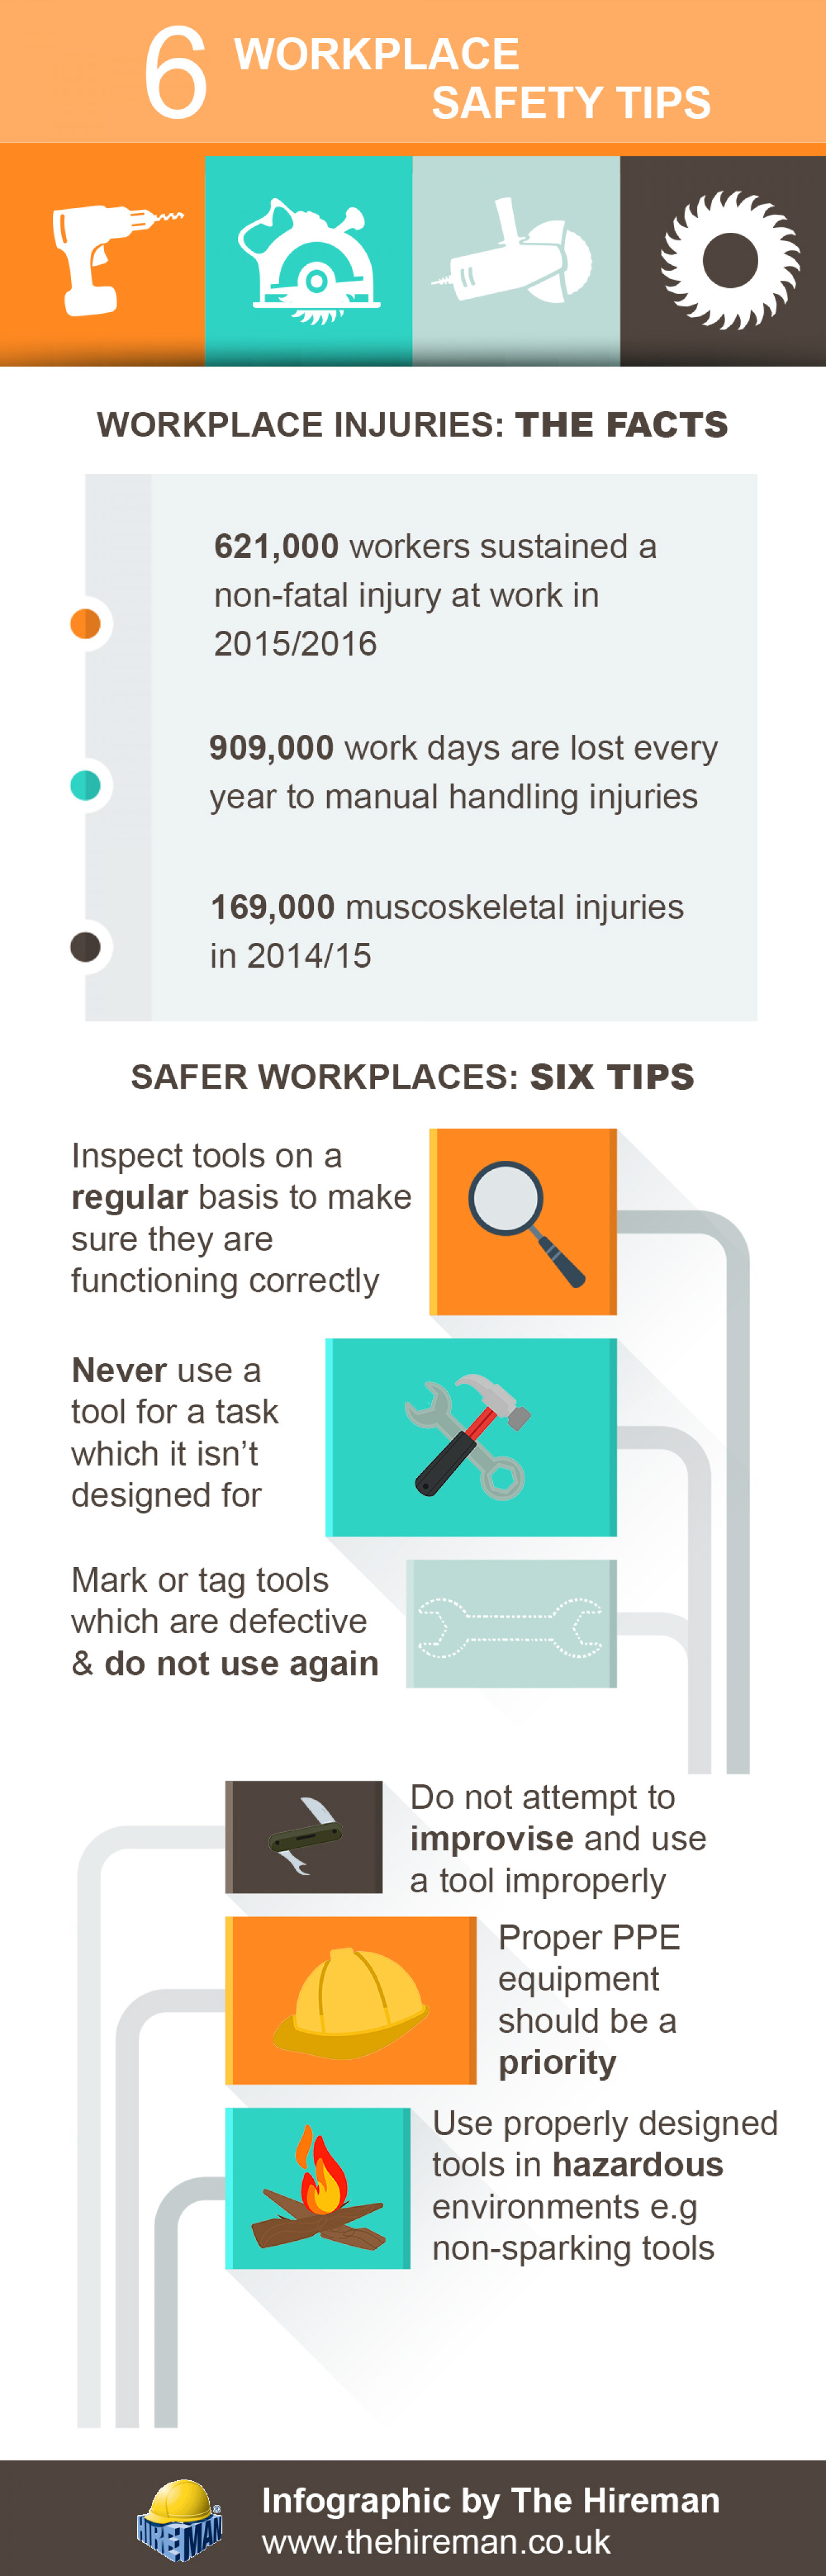 6 Workplace Safety Tips Infographic